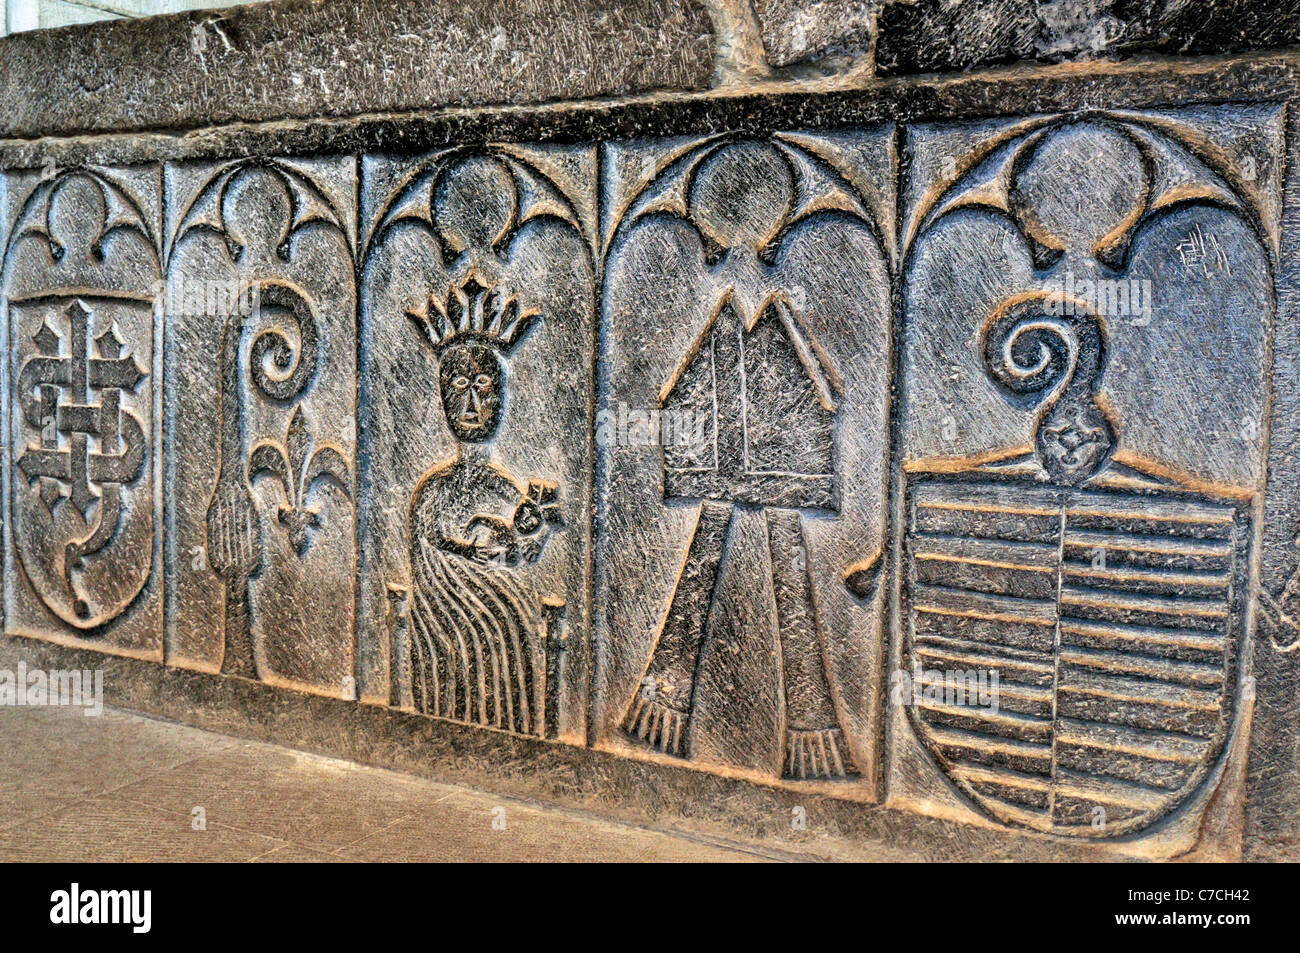 Spain, St. James Way: Romanesque stone reliefs on a tomb in the church La Colegiata in Roncesvalles - Stock Image